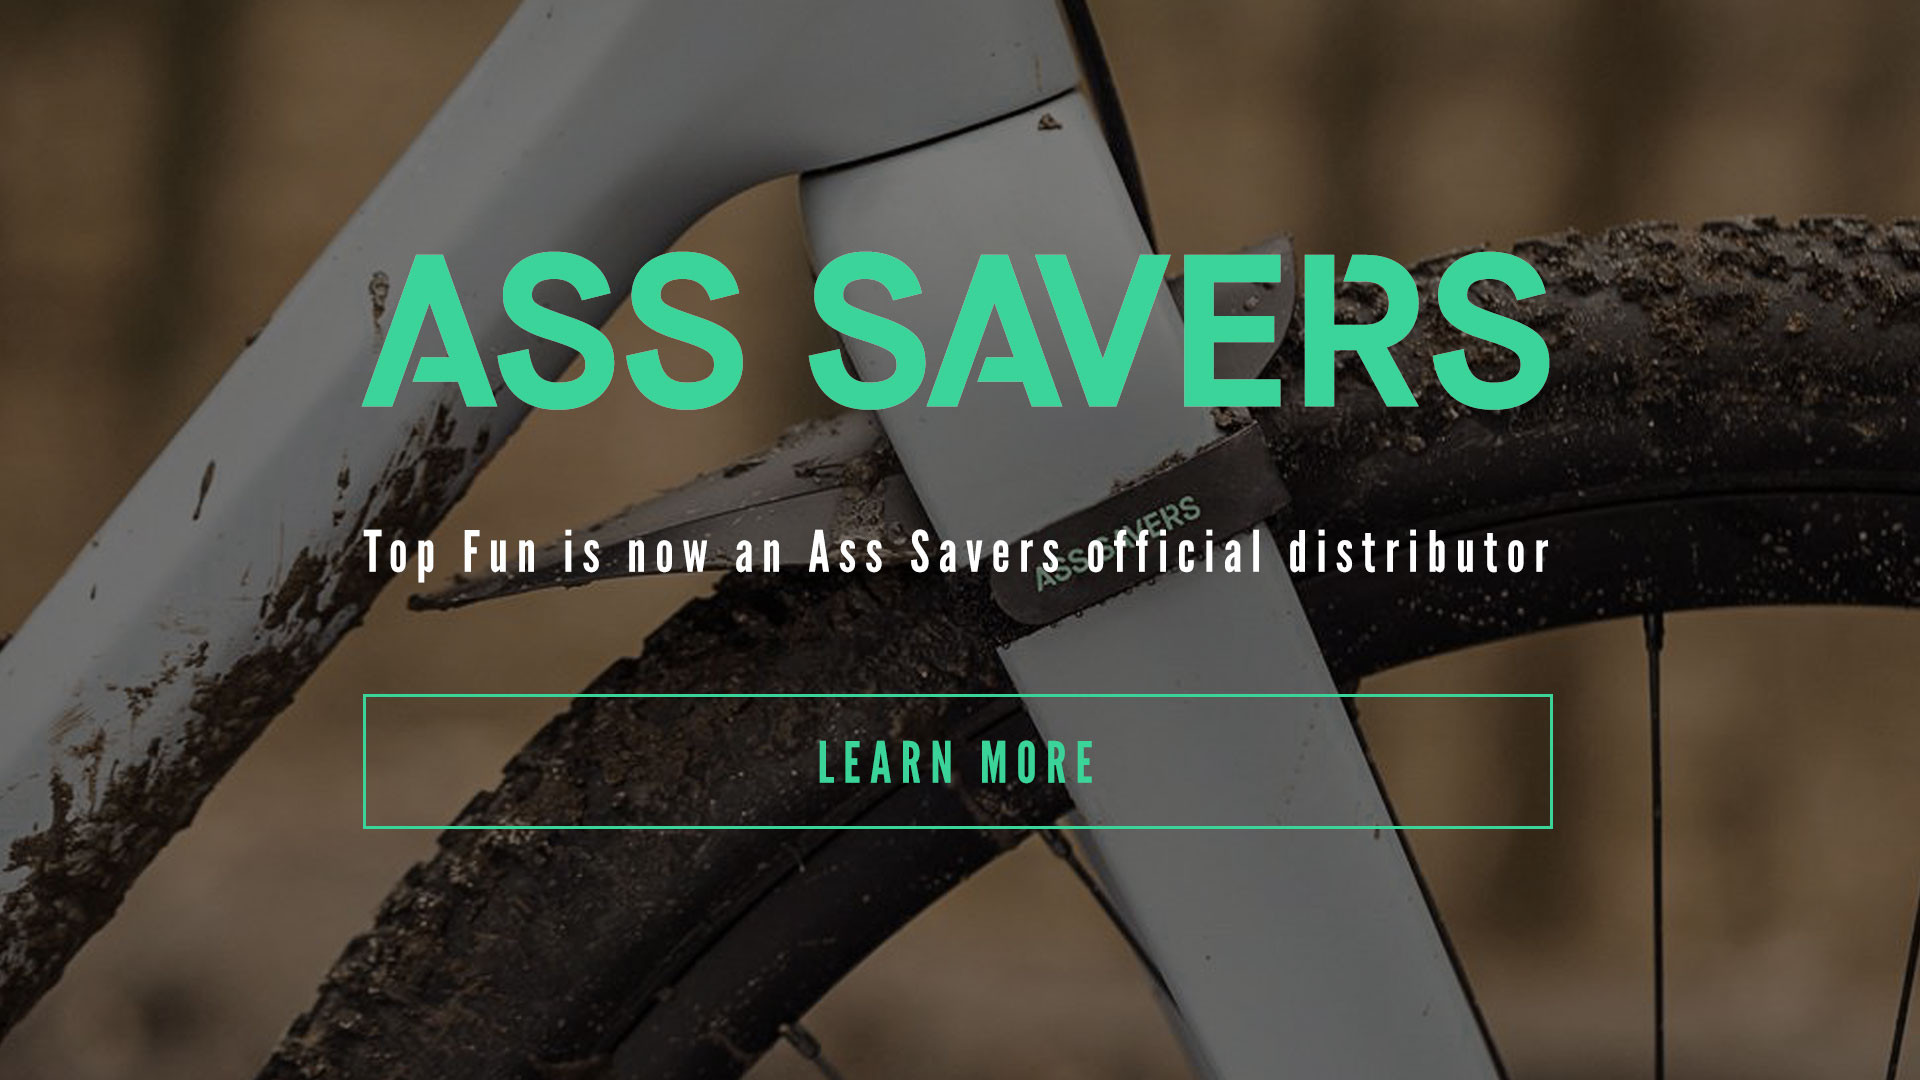 ASS SAVERS DISTRIBUTION